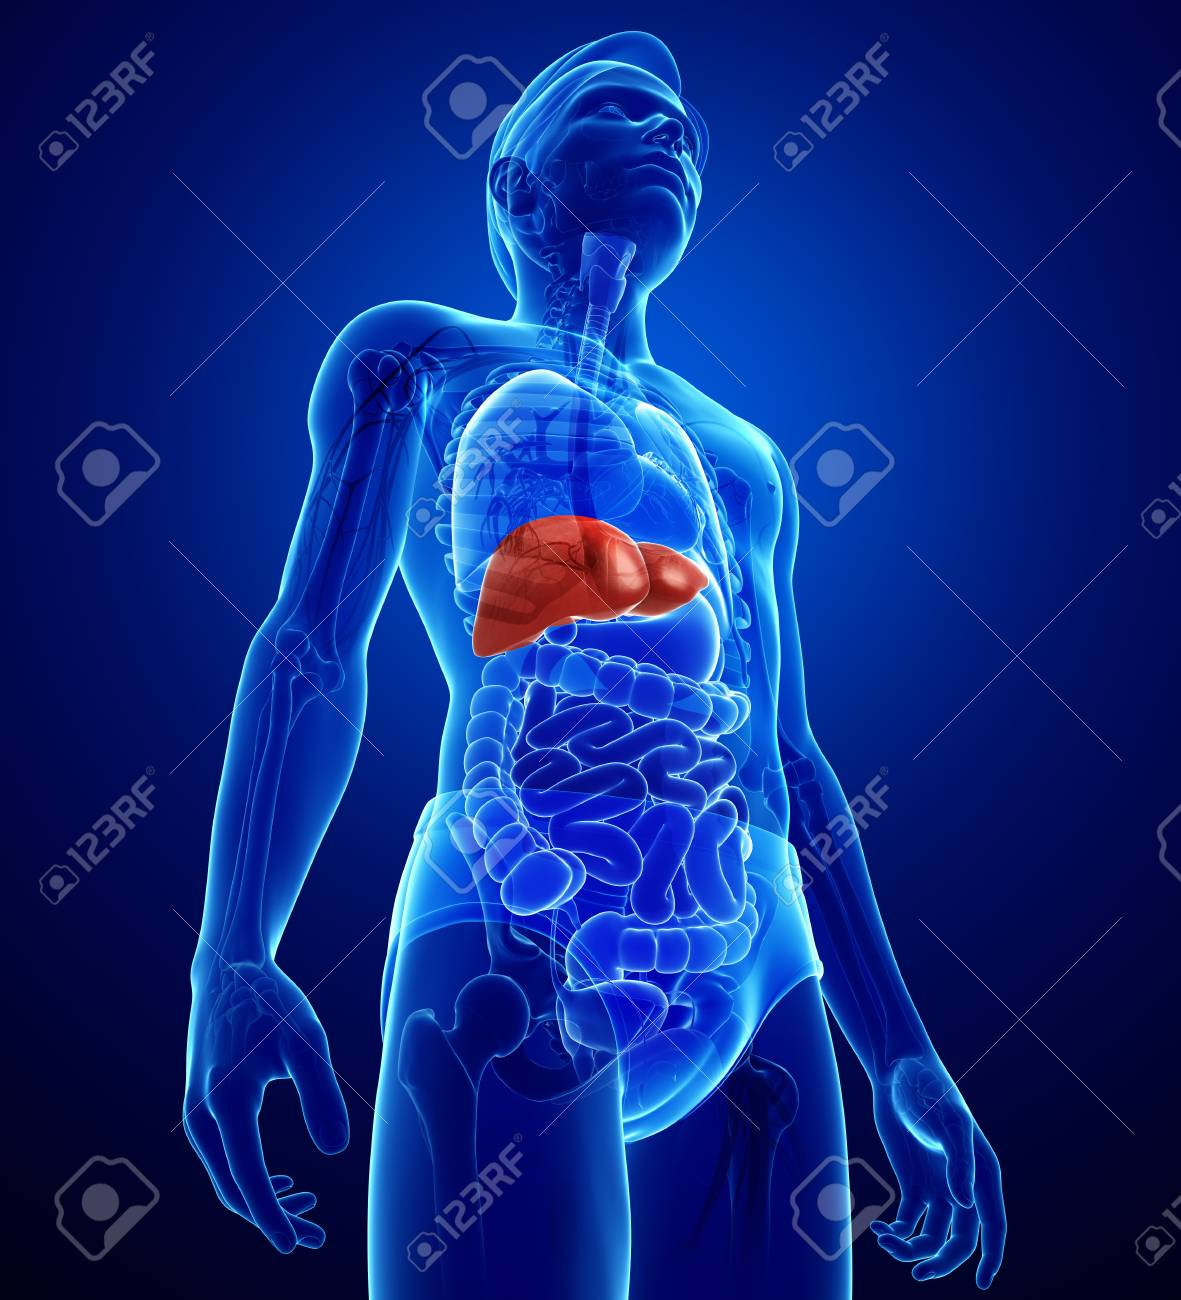 Illustration De Mle Anatomie Du Foie Banque Dimages Et Photos